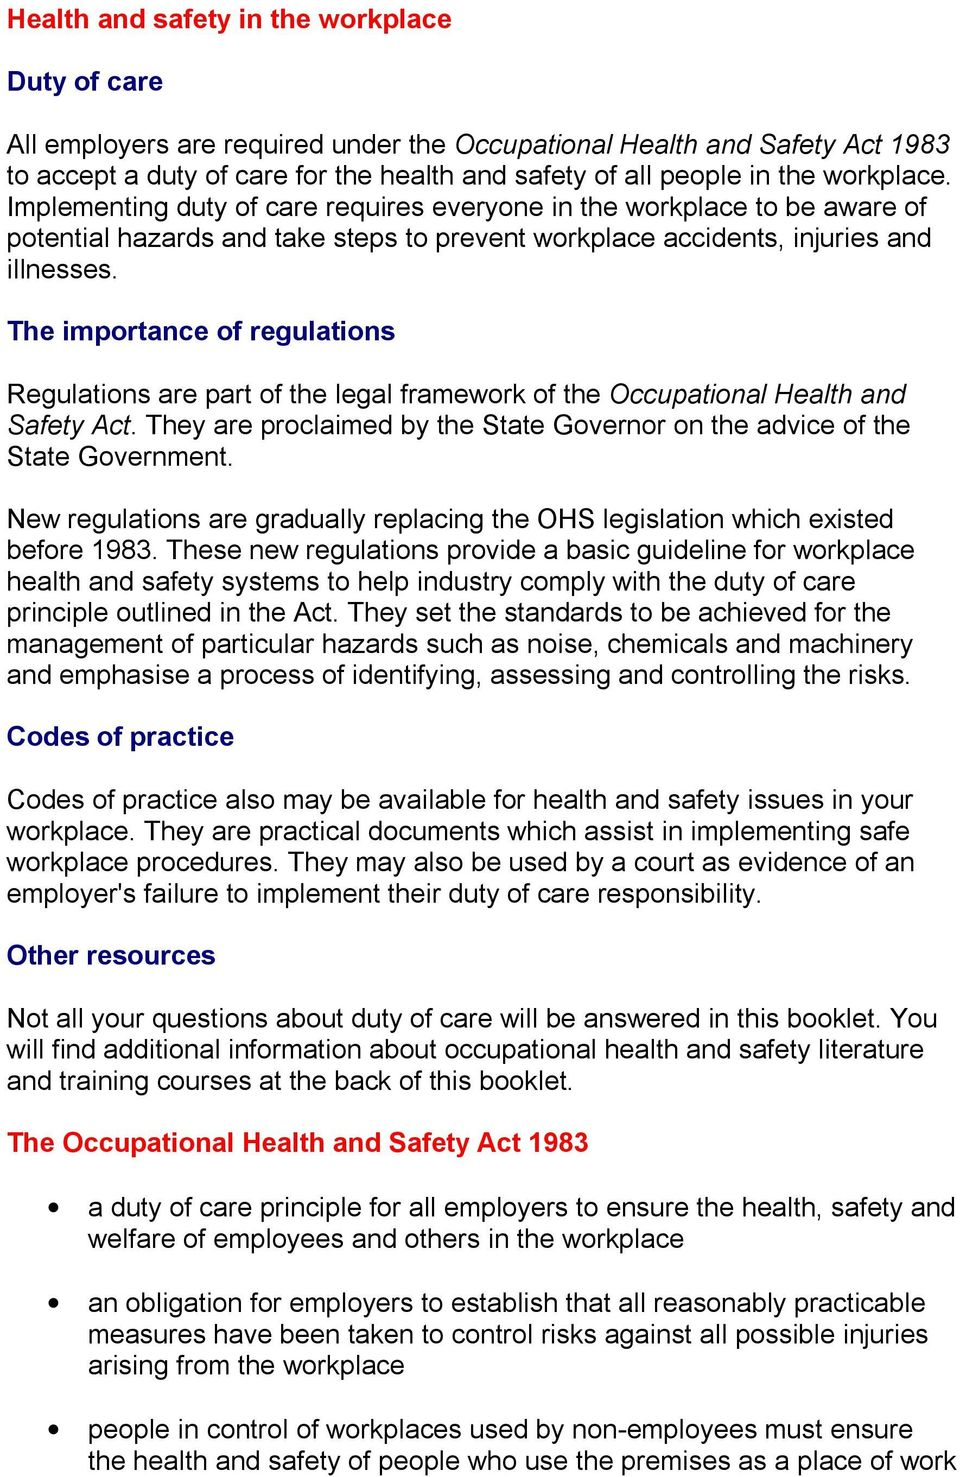 The importance of regulations Regulations are part of the legal framework of the Occupational Health and Safety Act. They are proclaimed by the State Governor on the advice of the State Government.